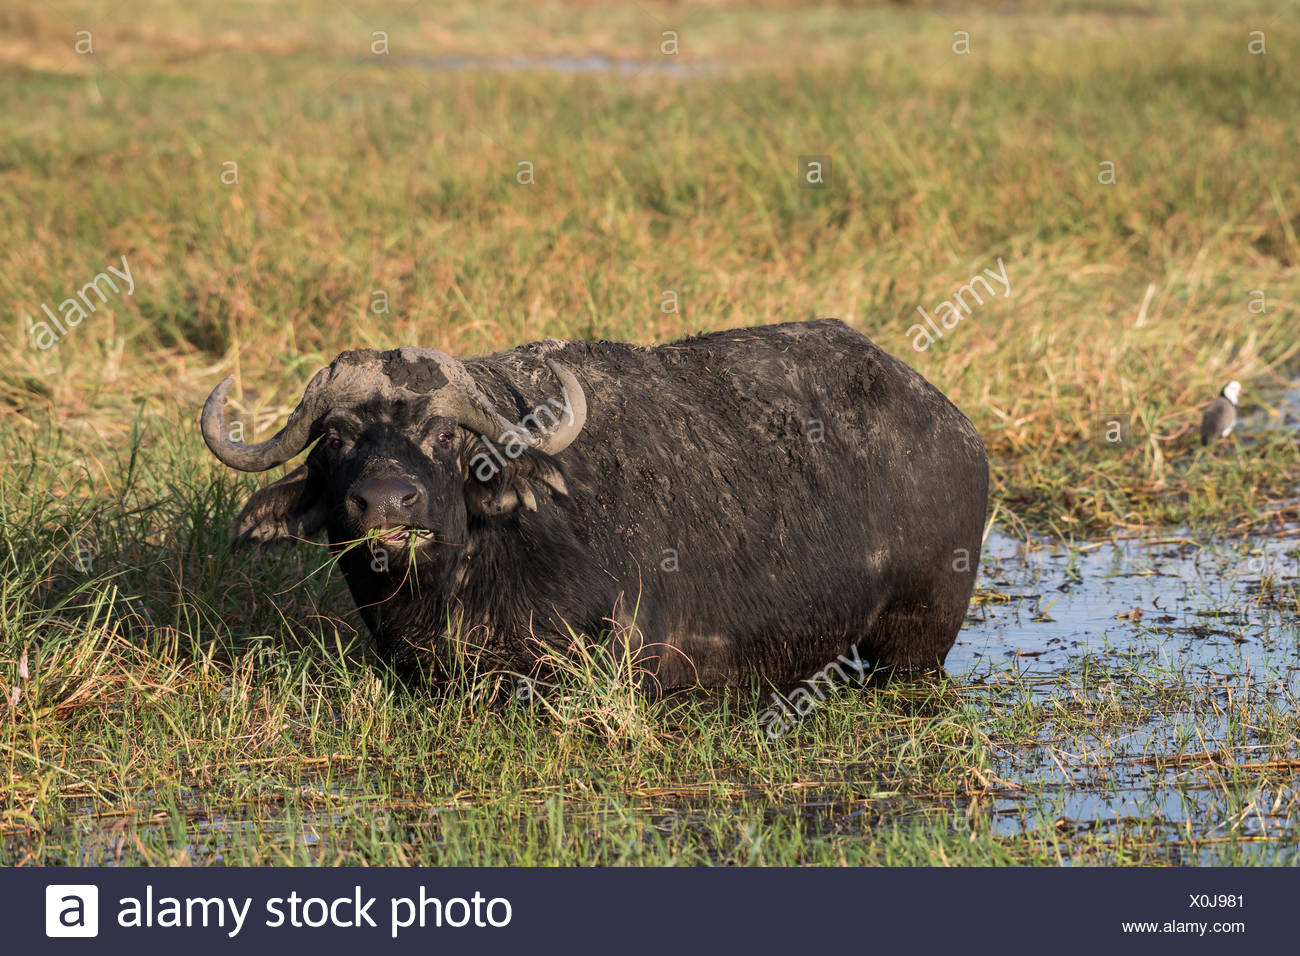 African or Cape buffalo (Syncerus caffer) standing in water, feeding, Chobe River, Chobe National Park, Botswana Stock Photo